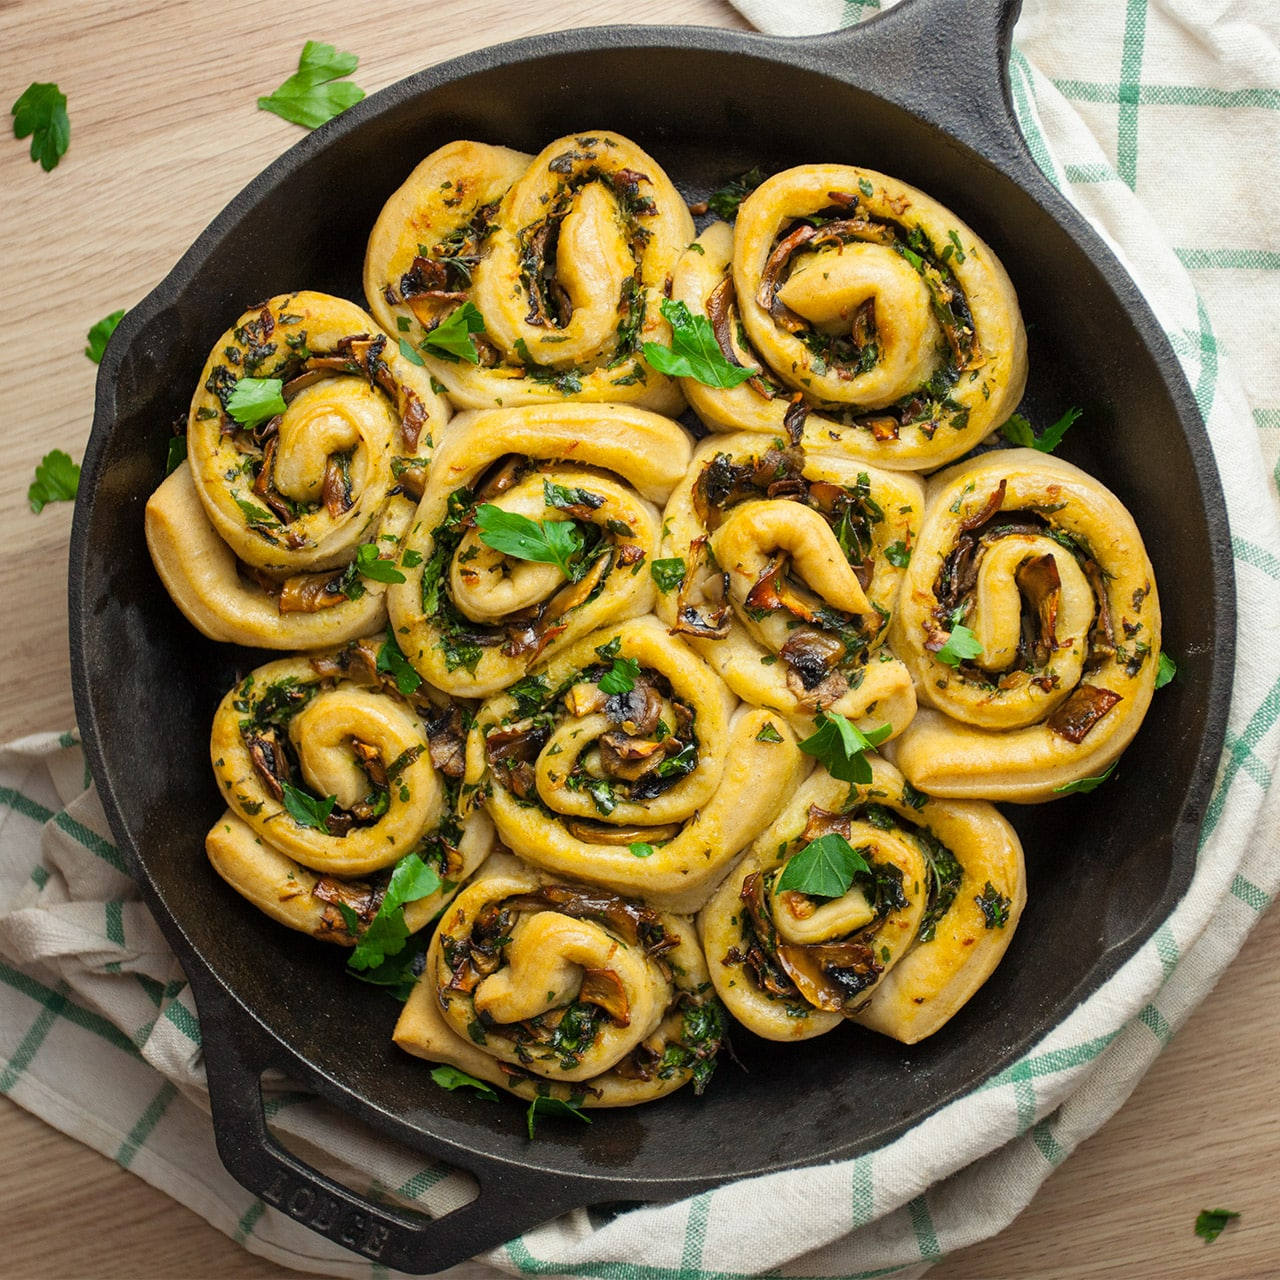 Garlic Bread Swirls